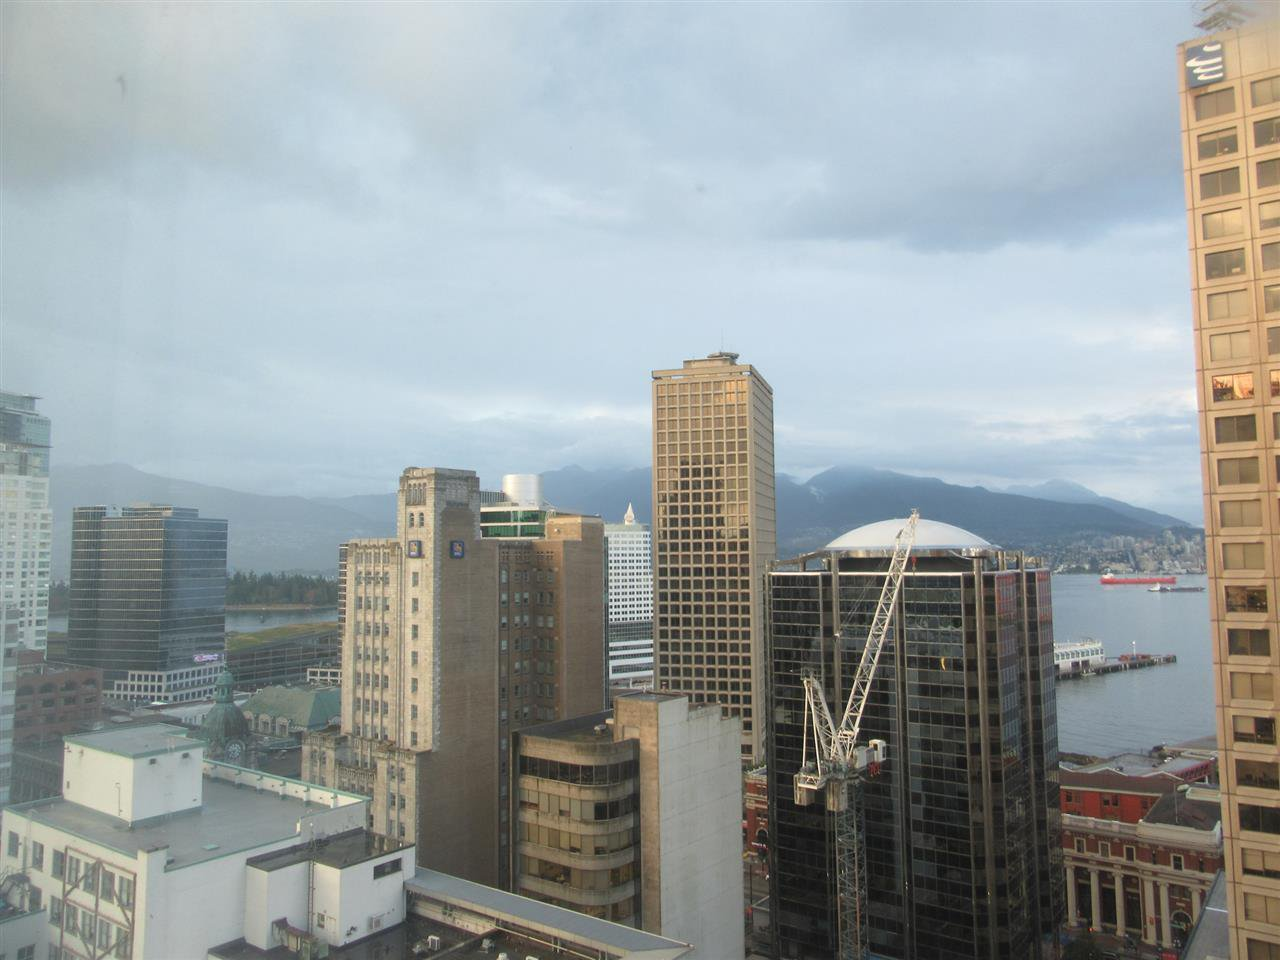 Main Photo: 2206 438 SEYMOUR Street in Vancouver: Downtown VW Condo for sale (Vancouver West)  : MLS®# R2404442